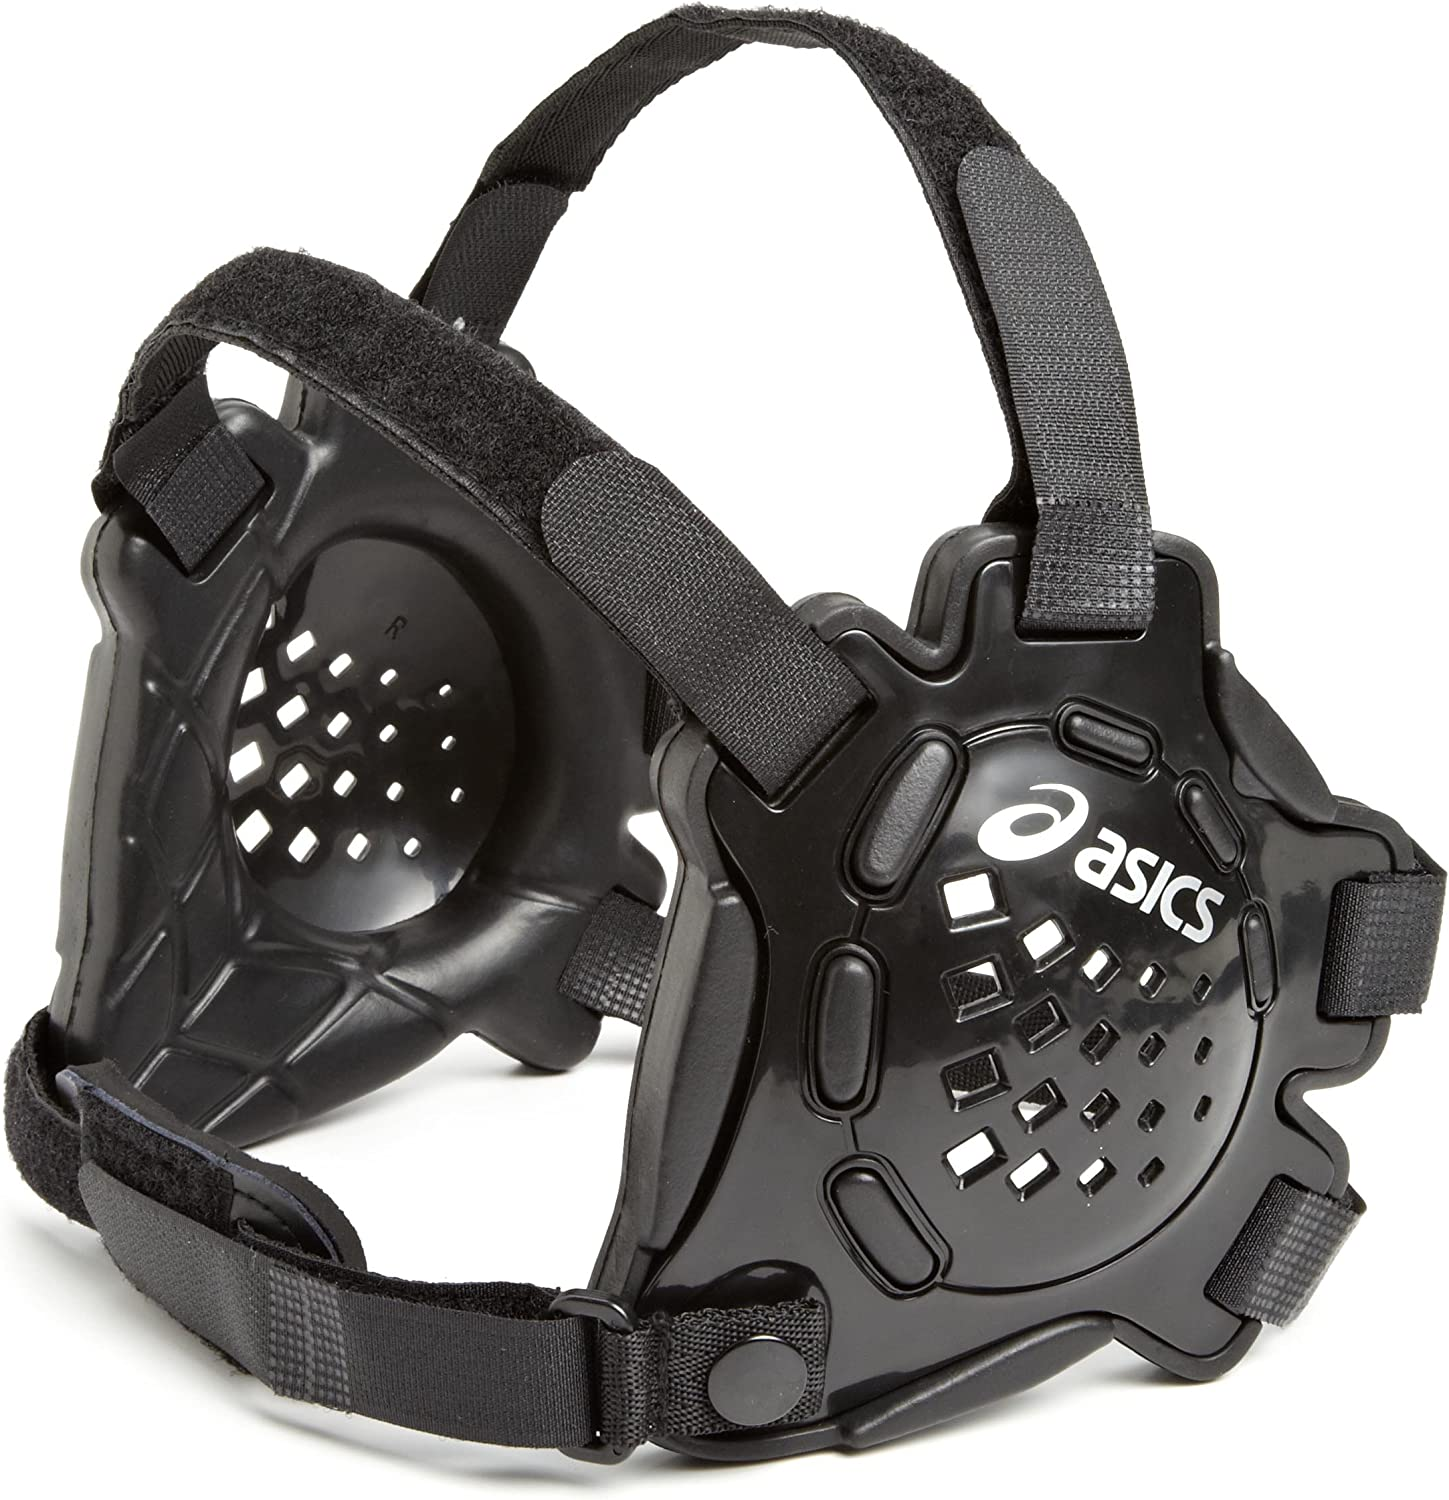 ASICS Conquest Earguard, Black/Black, One Size : Wrestling Ear Guards : Clothing